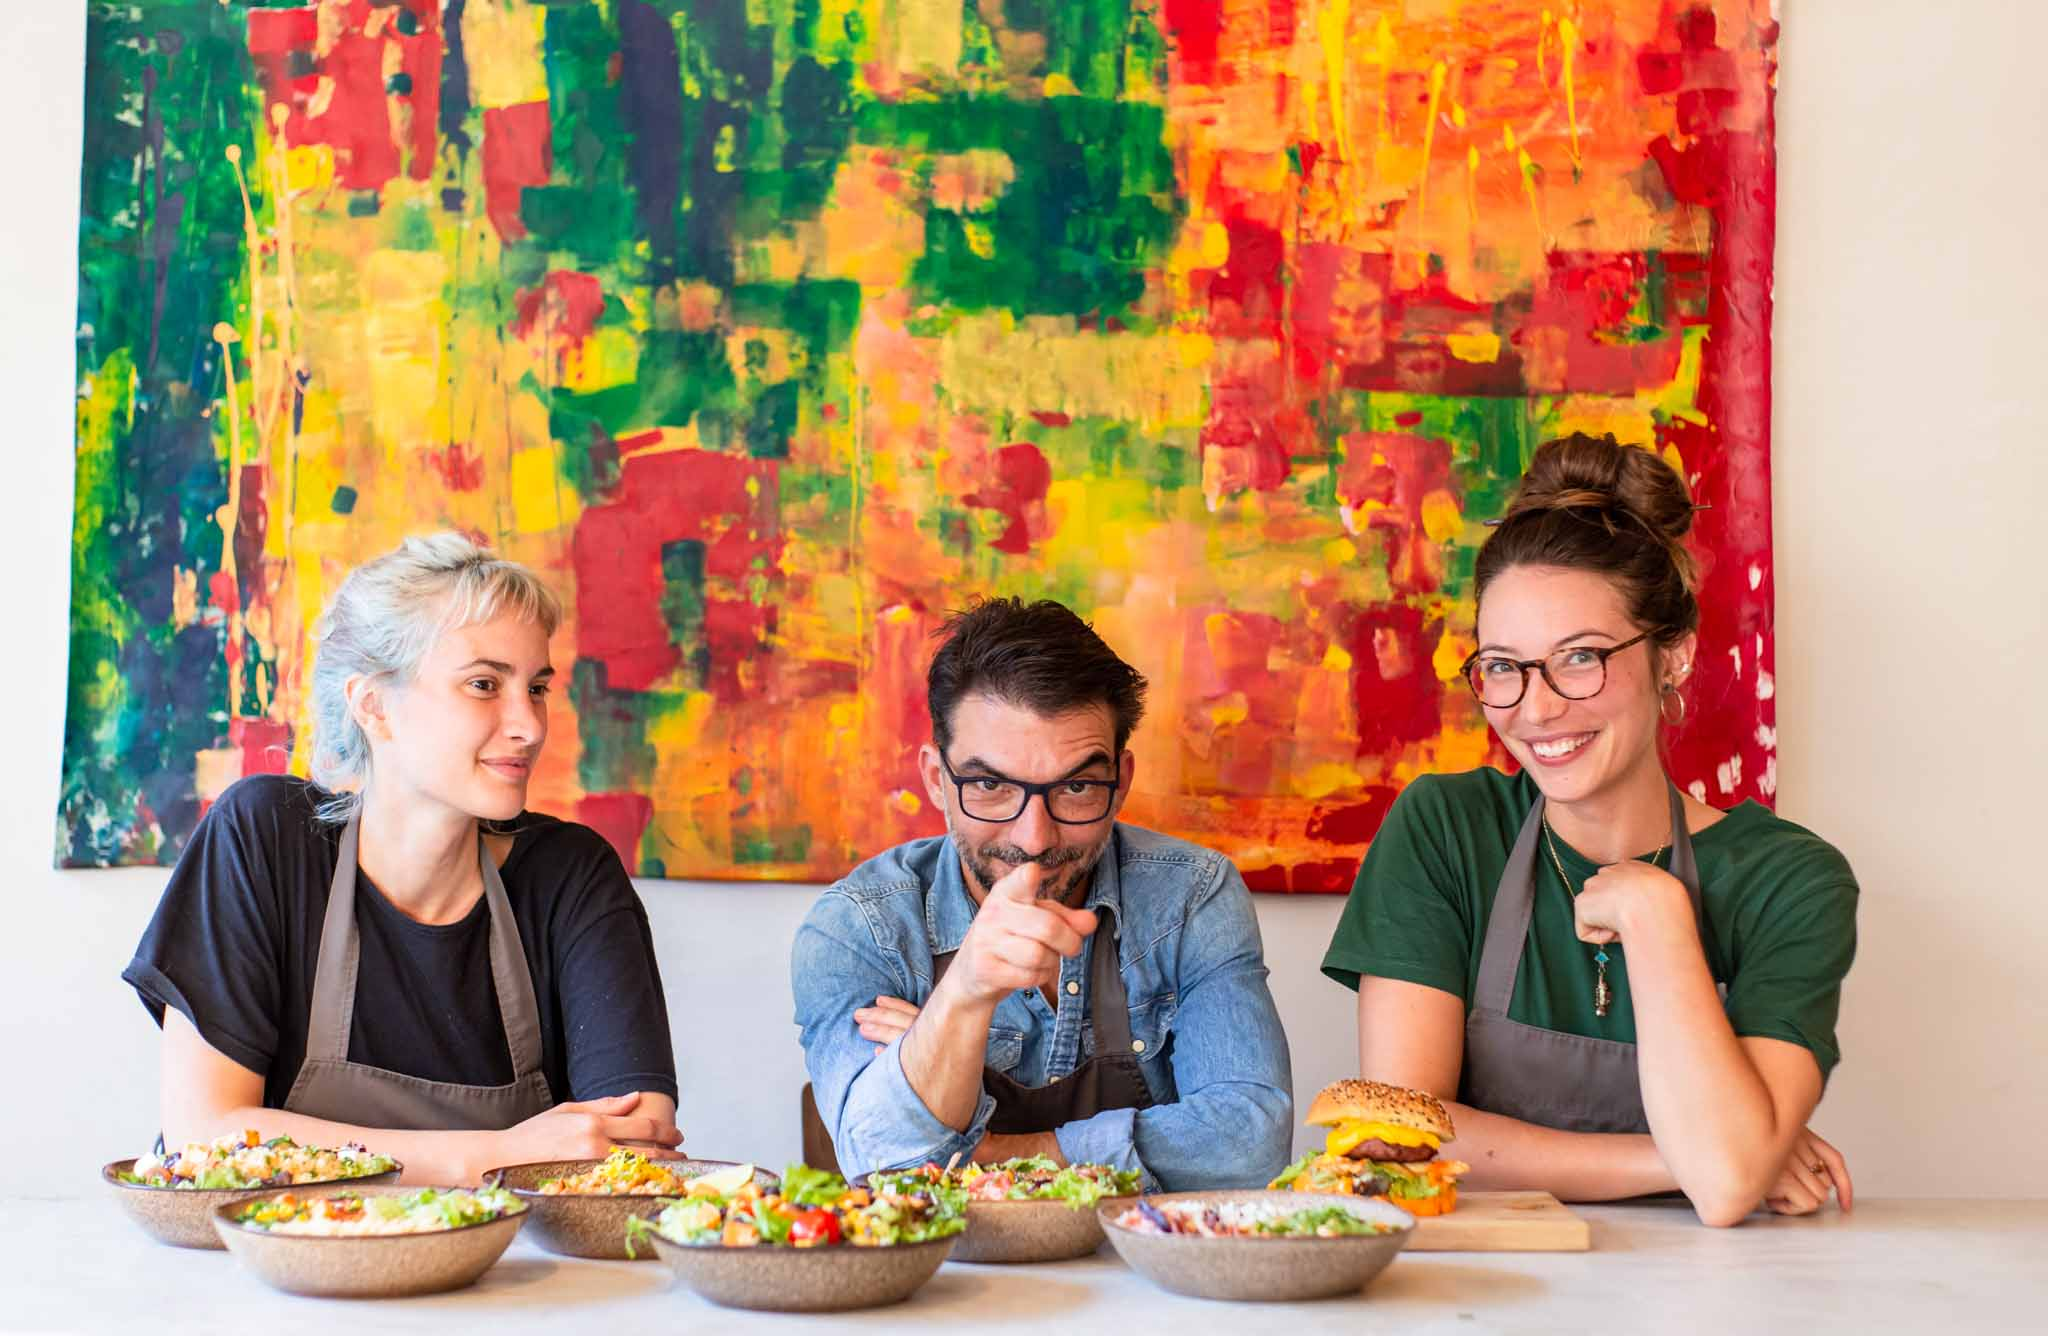 Portrait of restaurant owner and staff